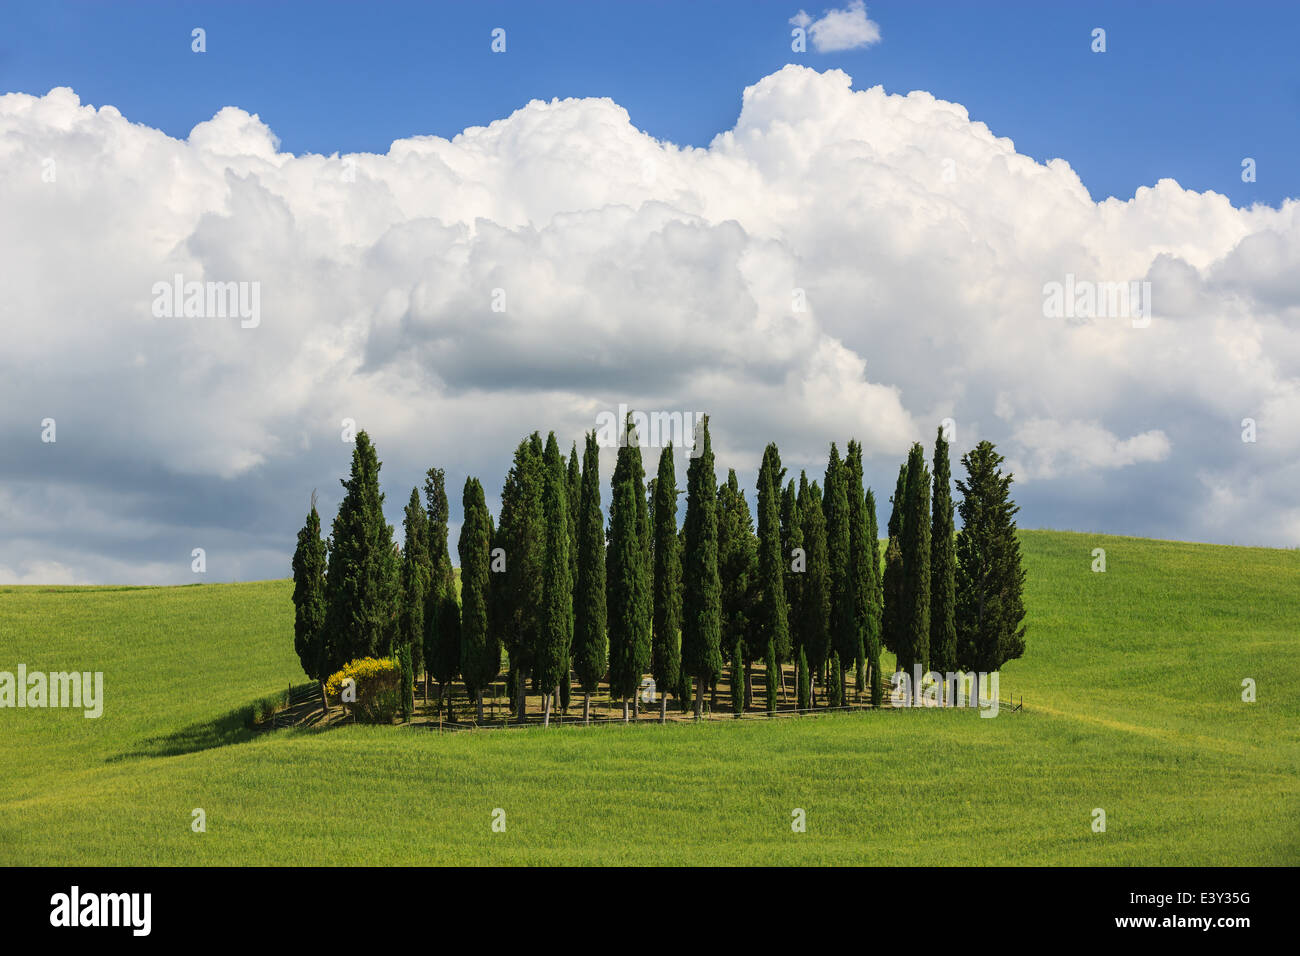 Circle of Cypress trees near Torrenieri in the heart of the Tuscany, Italy - Stock Image